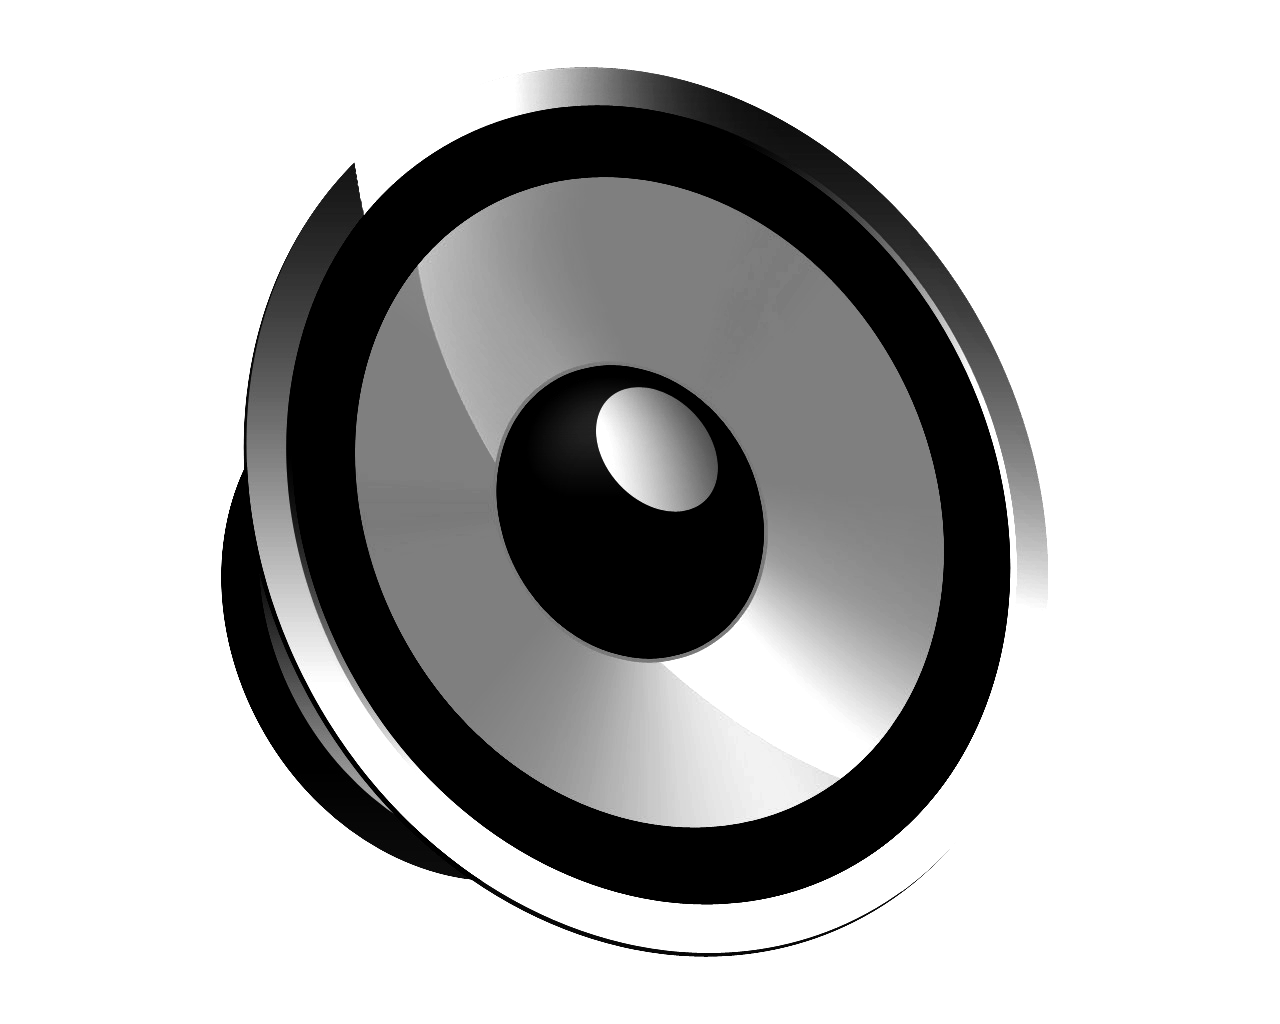 1280x1024 Collection Of Free Speakers Vector Car Speaker. Download On Ubisafe